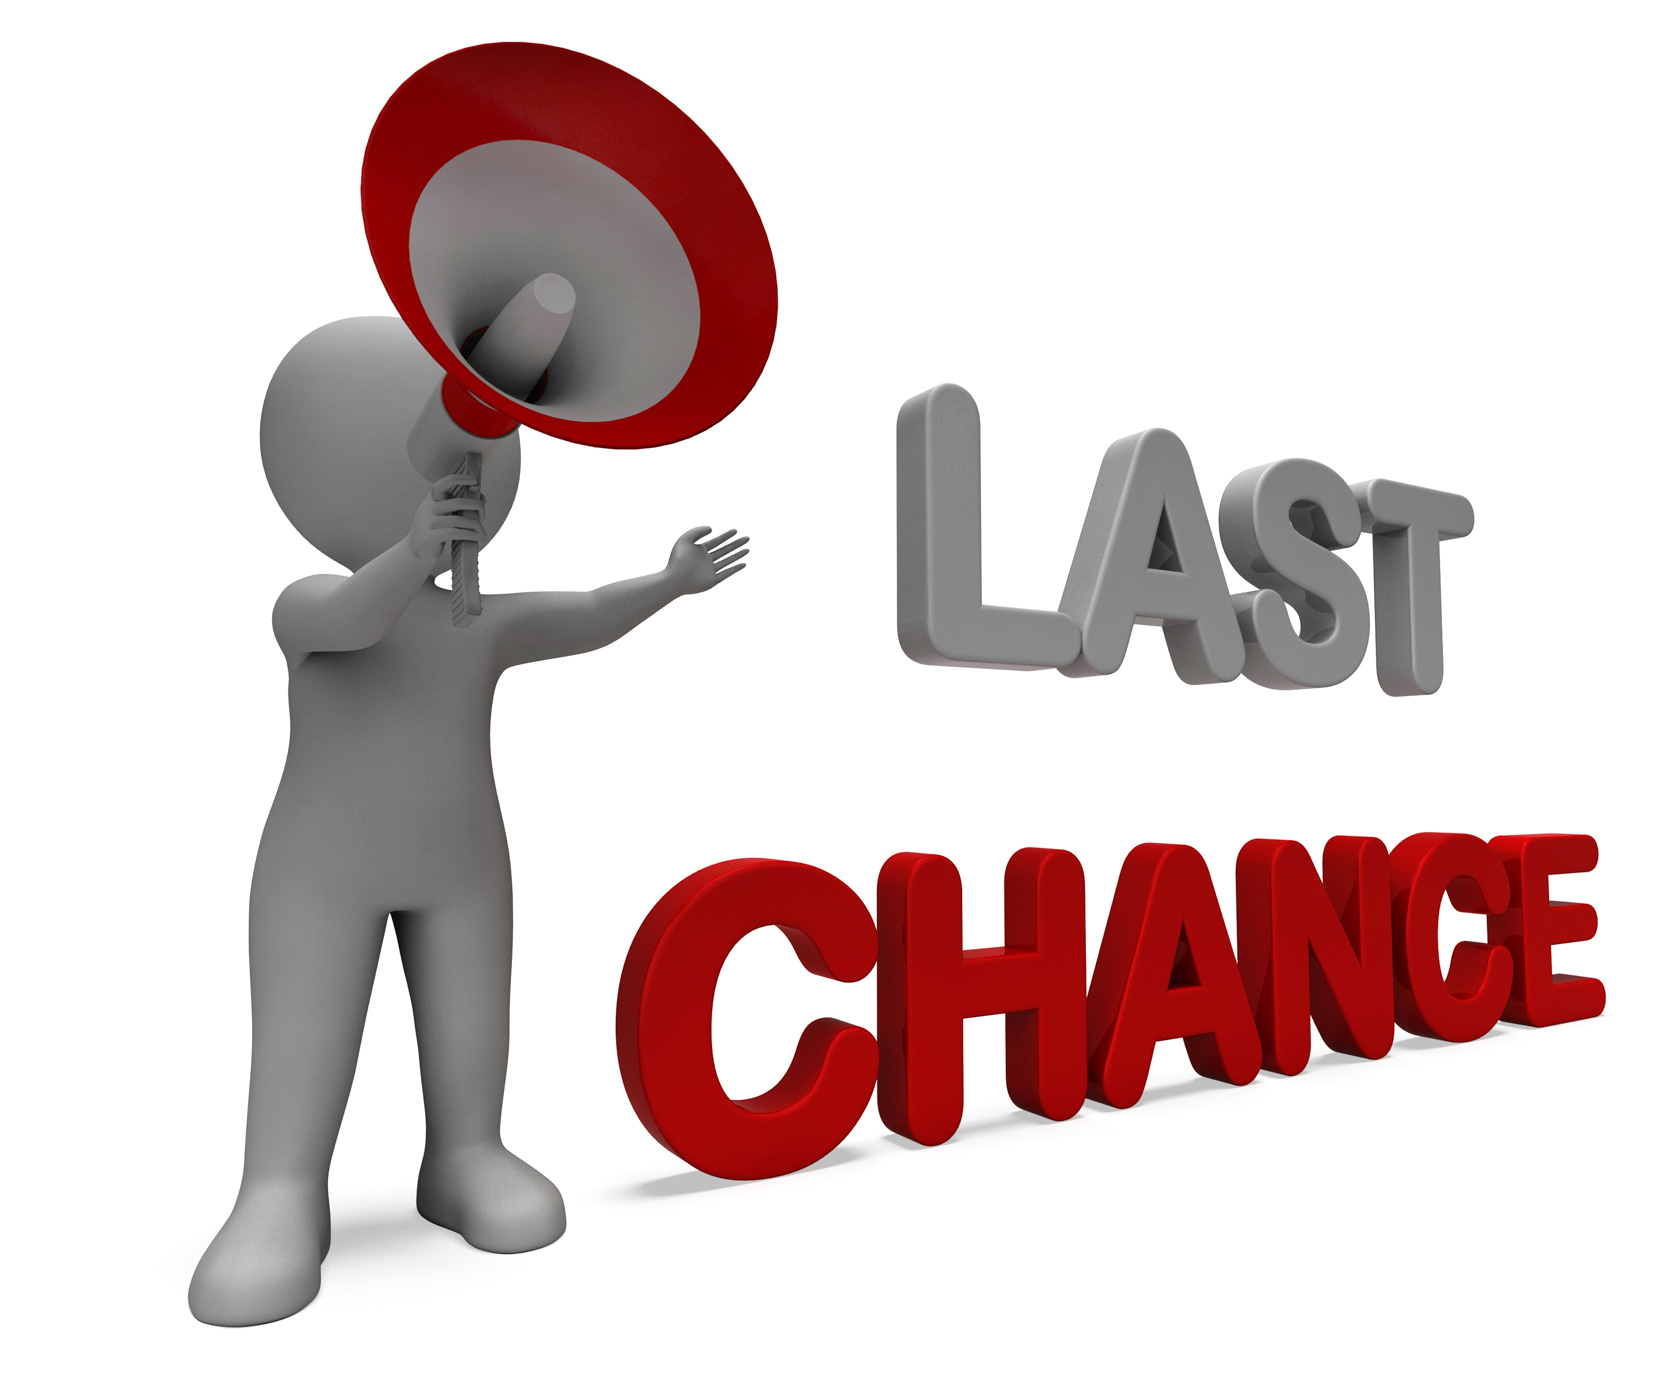 Last Chance Character Shows Warning Final Opportunity Or Act Now, Actnow, Chance, Deadline, Final, HQ Photo